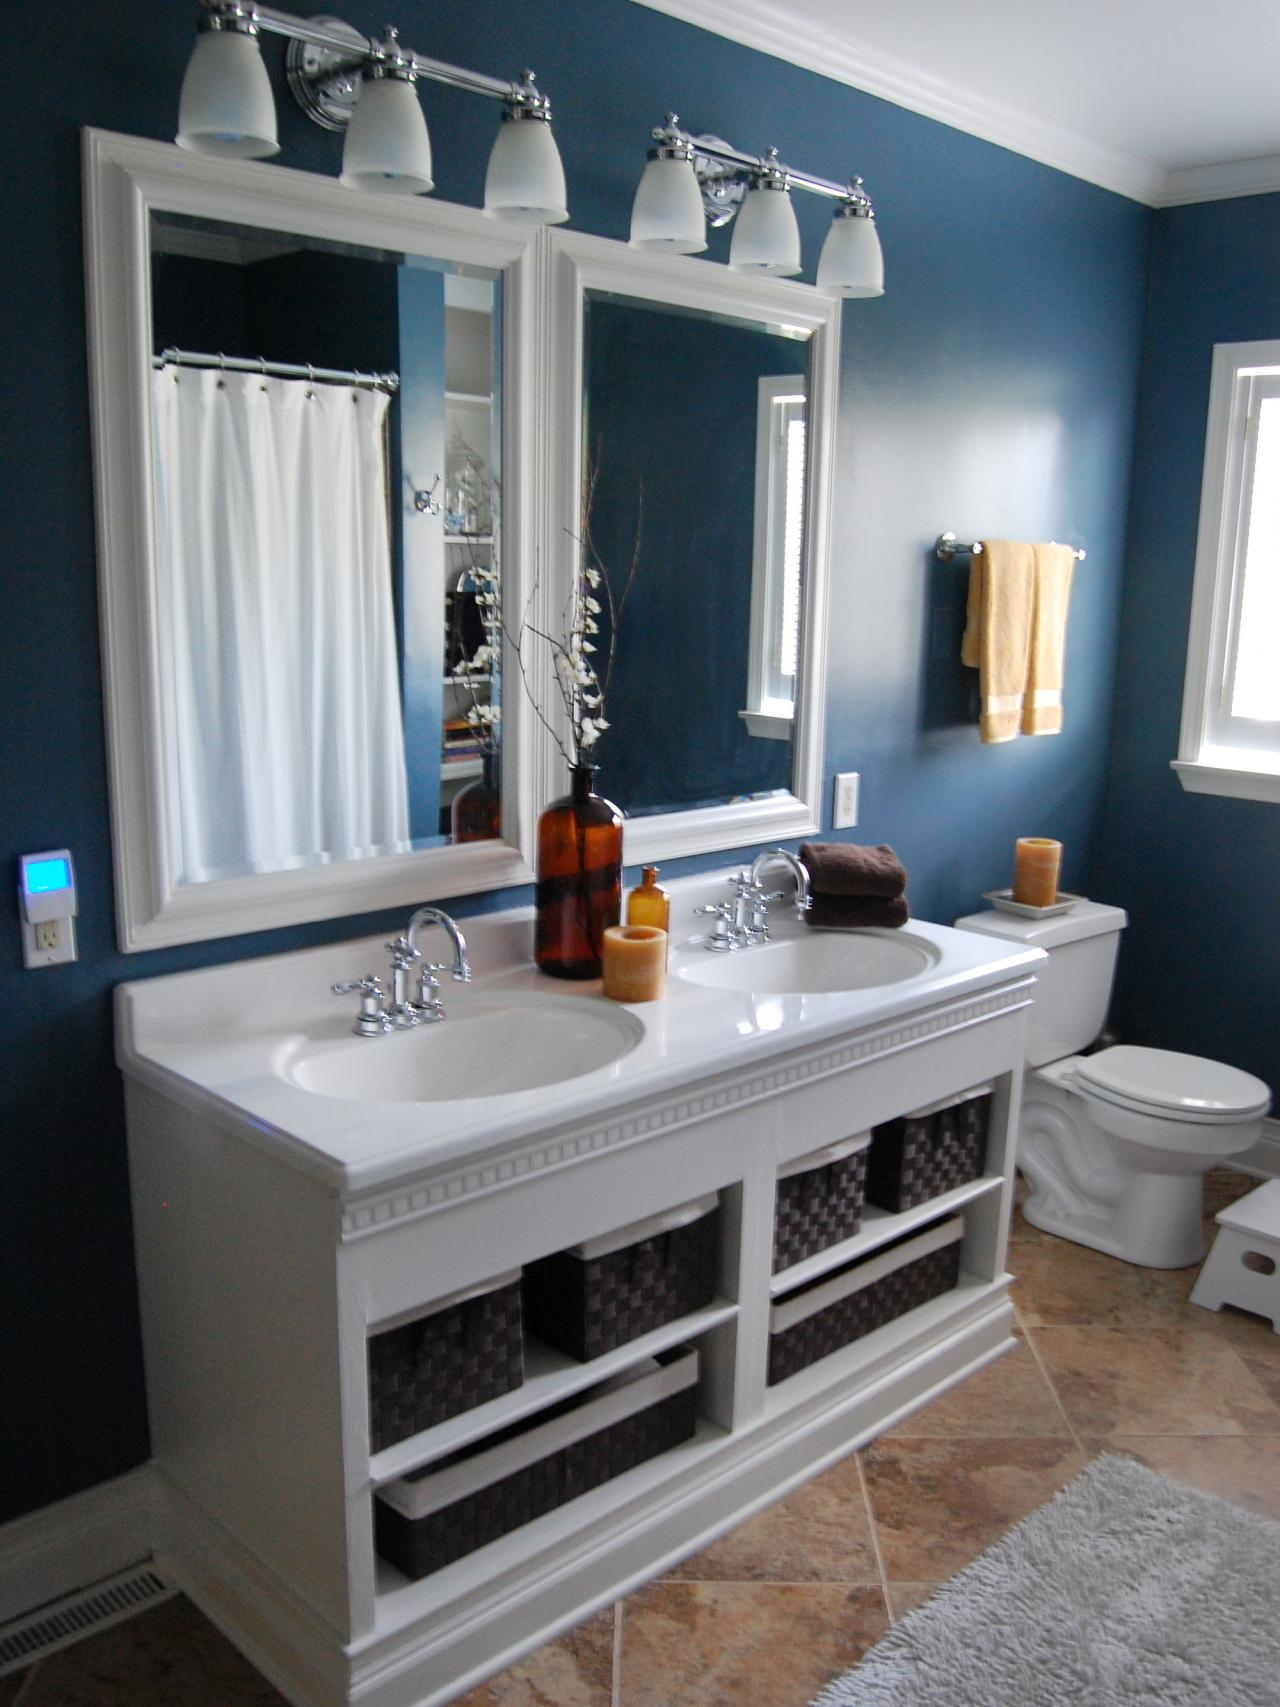 title | Bathroom remodel ideas